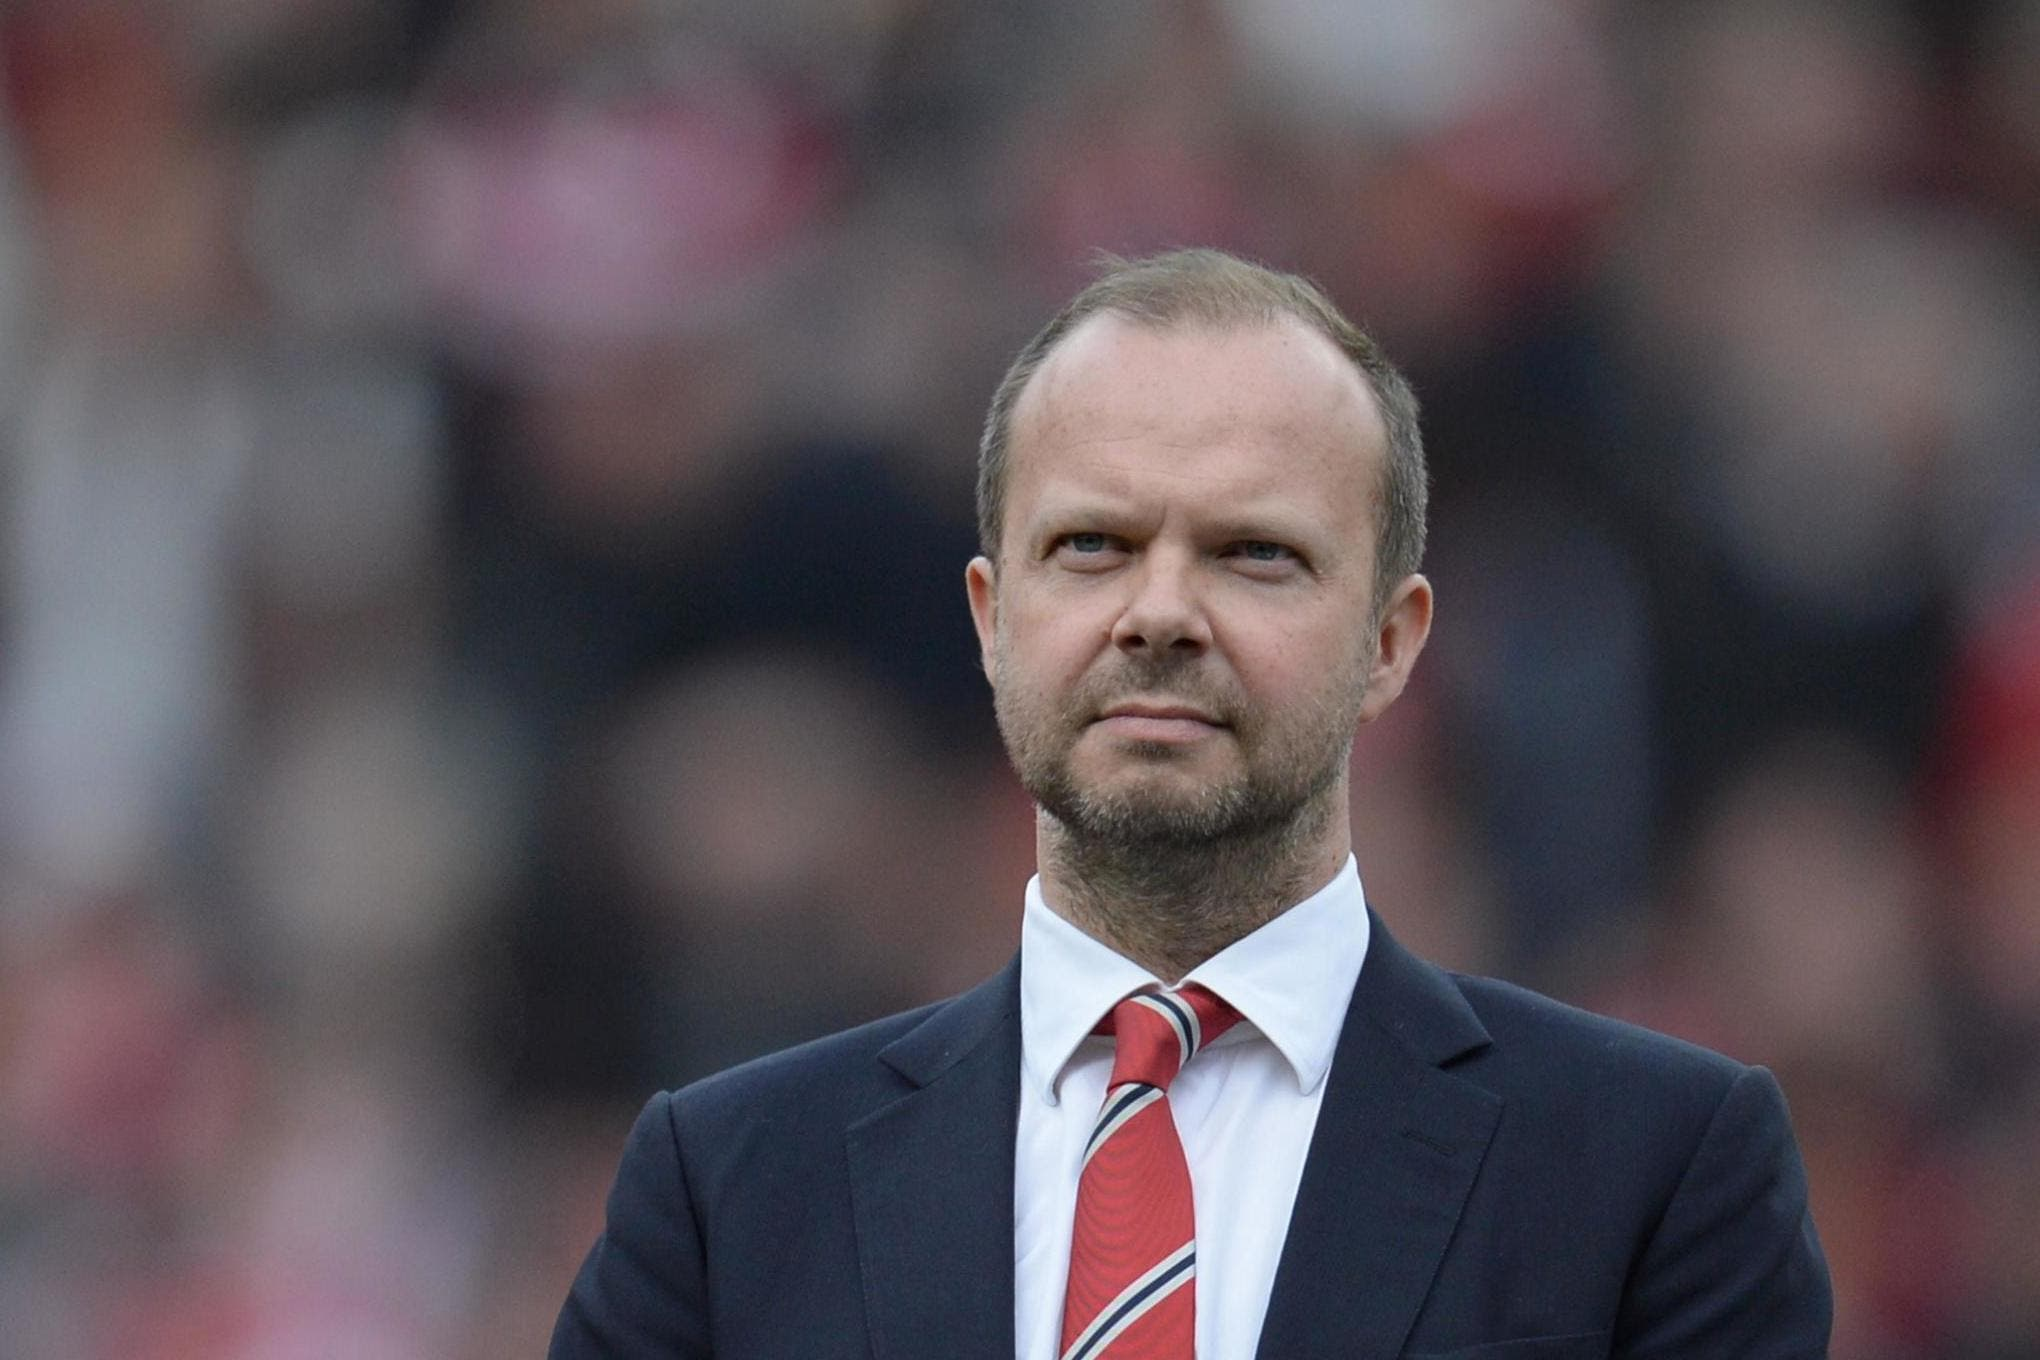 Ed Woodward: Manchester United chief to step down amid European Super League fallout